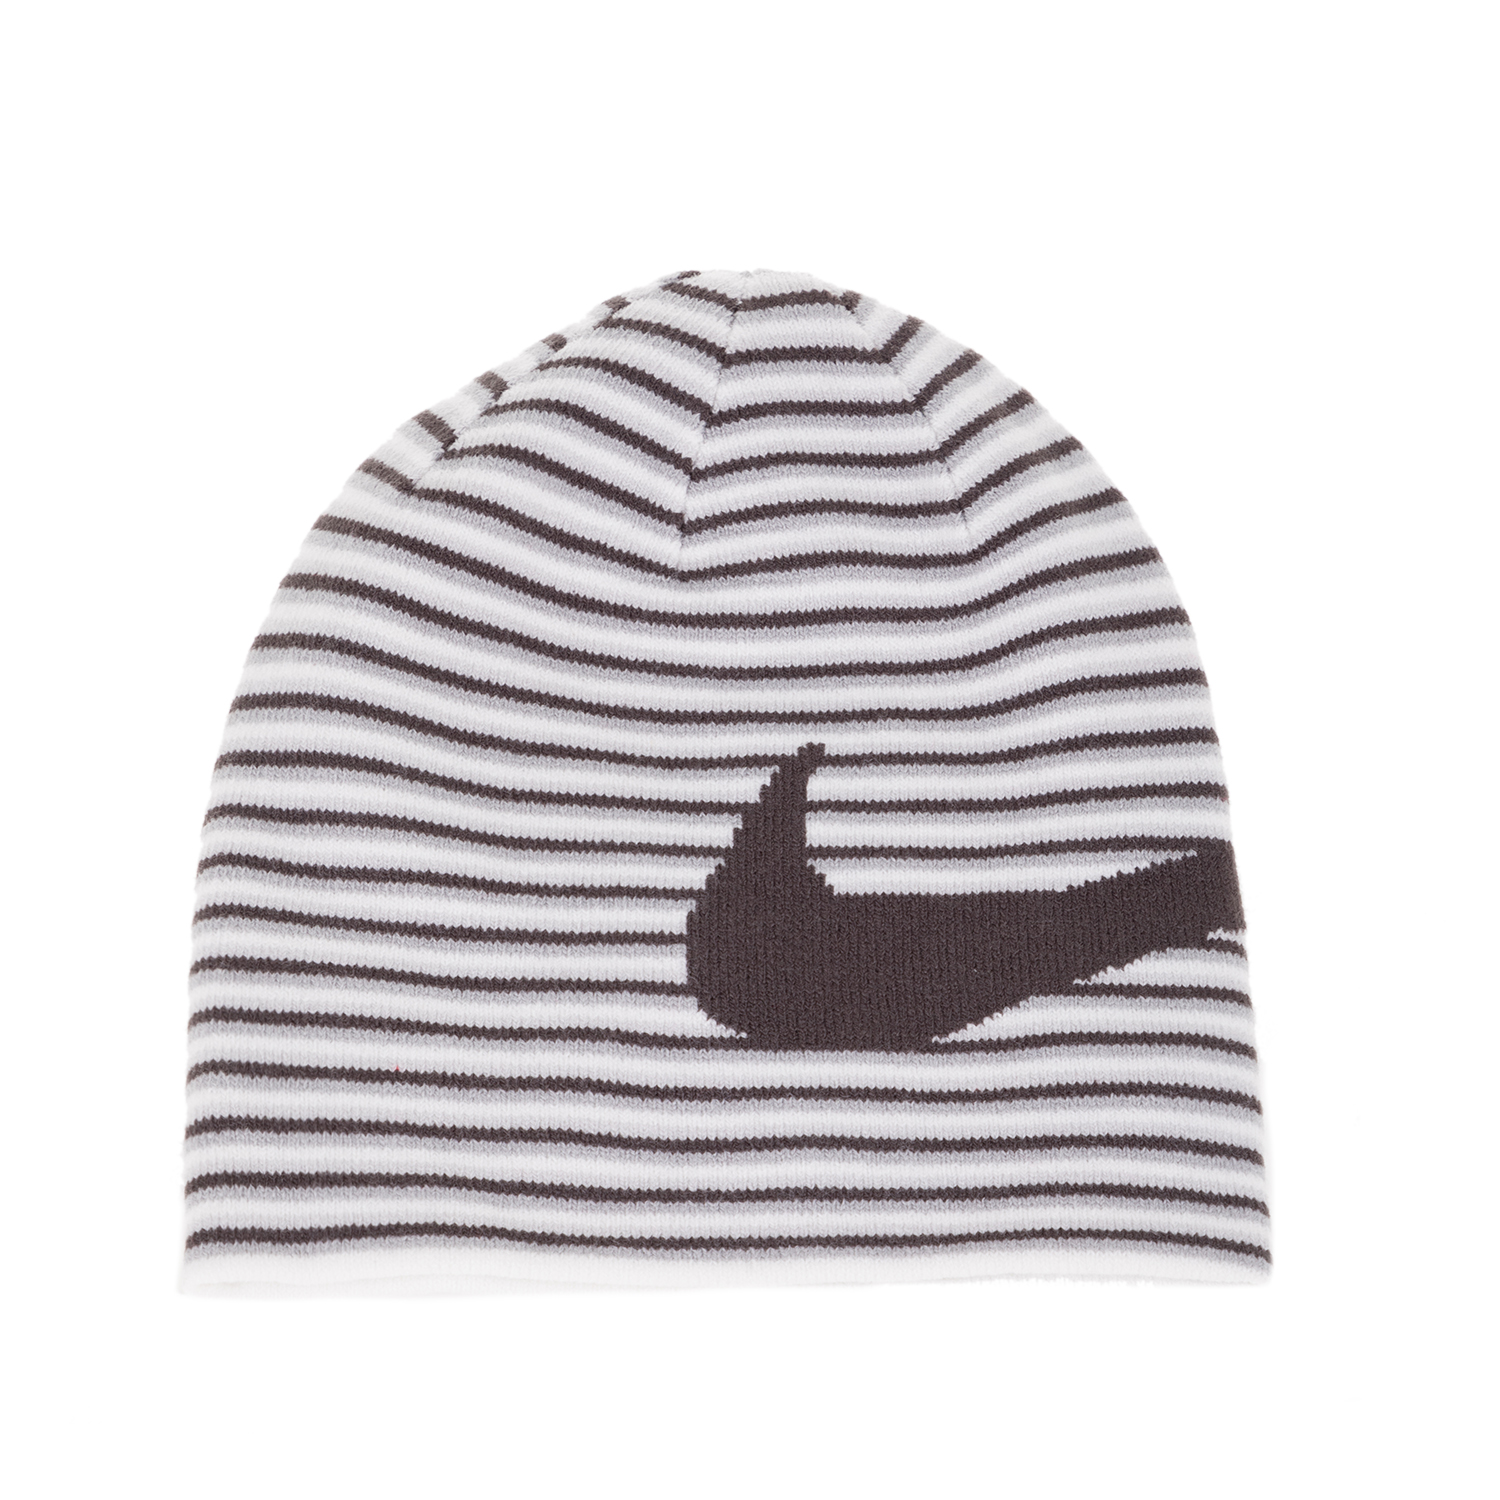 NIKE - Unisex παιδικός σκούφος NIKE BEANIE REVERSIBLE λευκός με ριγέ μοτίβο παιδικά boys αξεσουάρ καπέλα σκούφοι